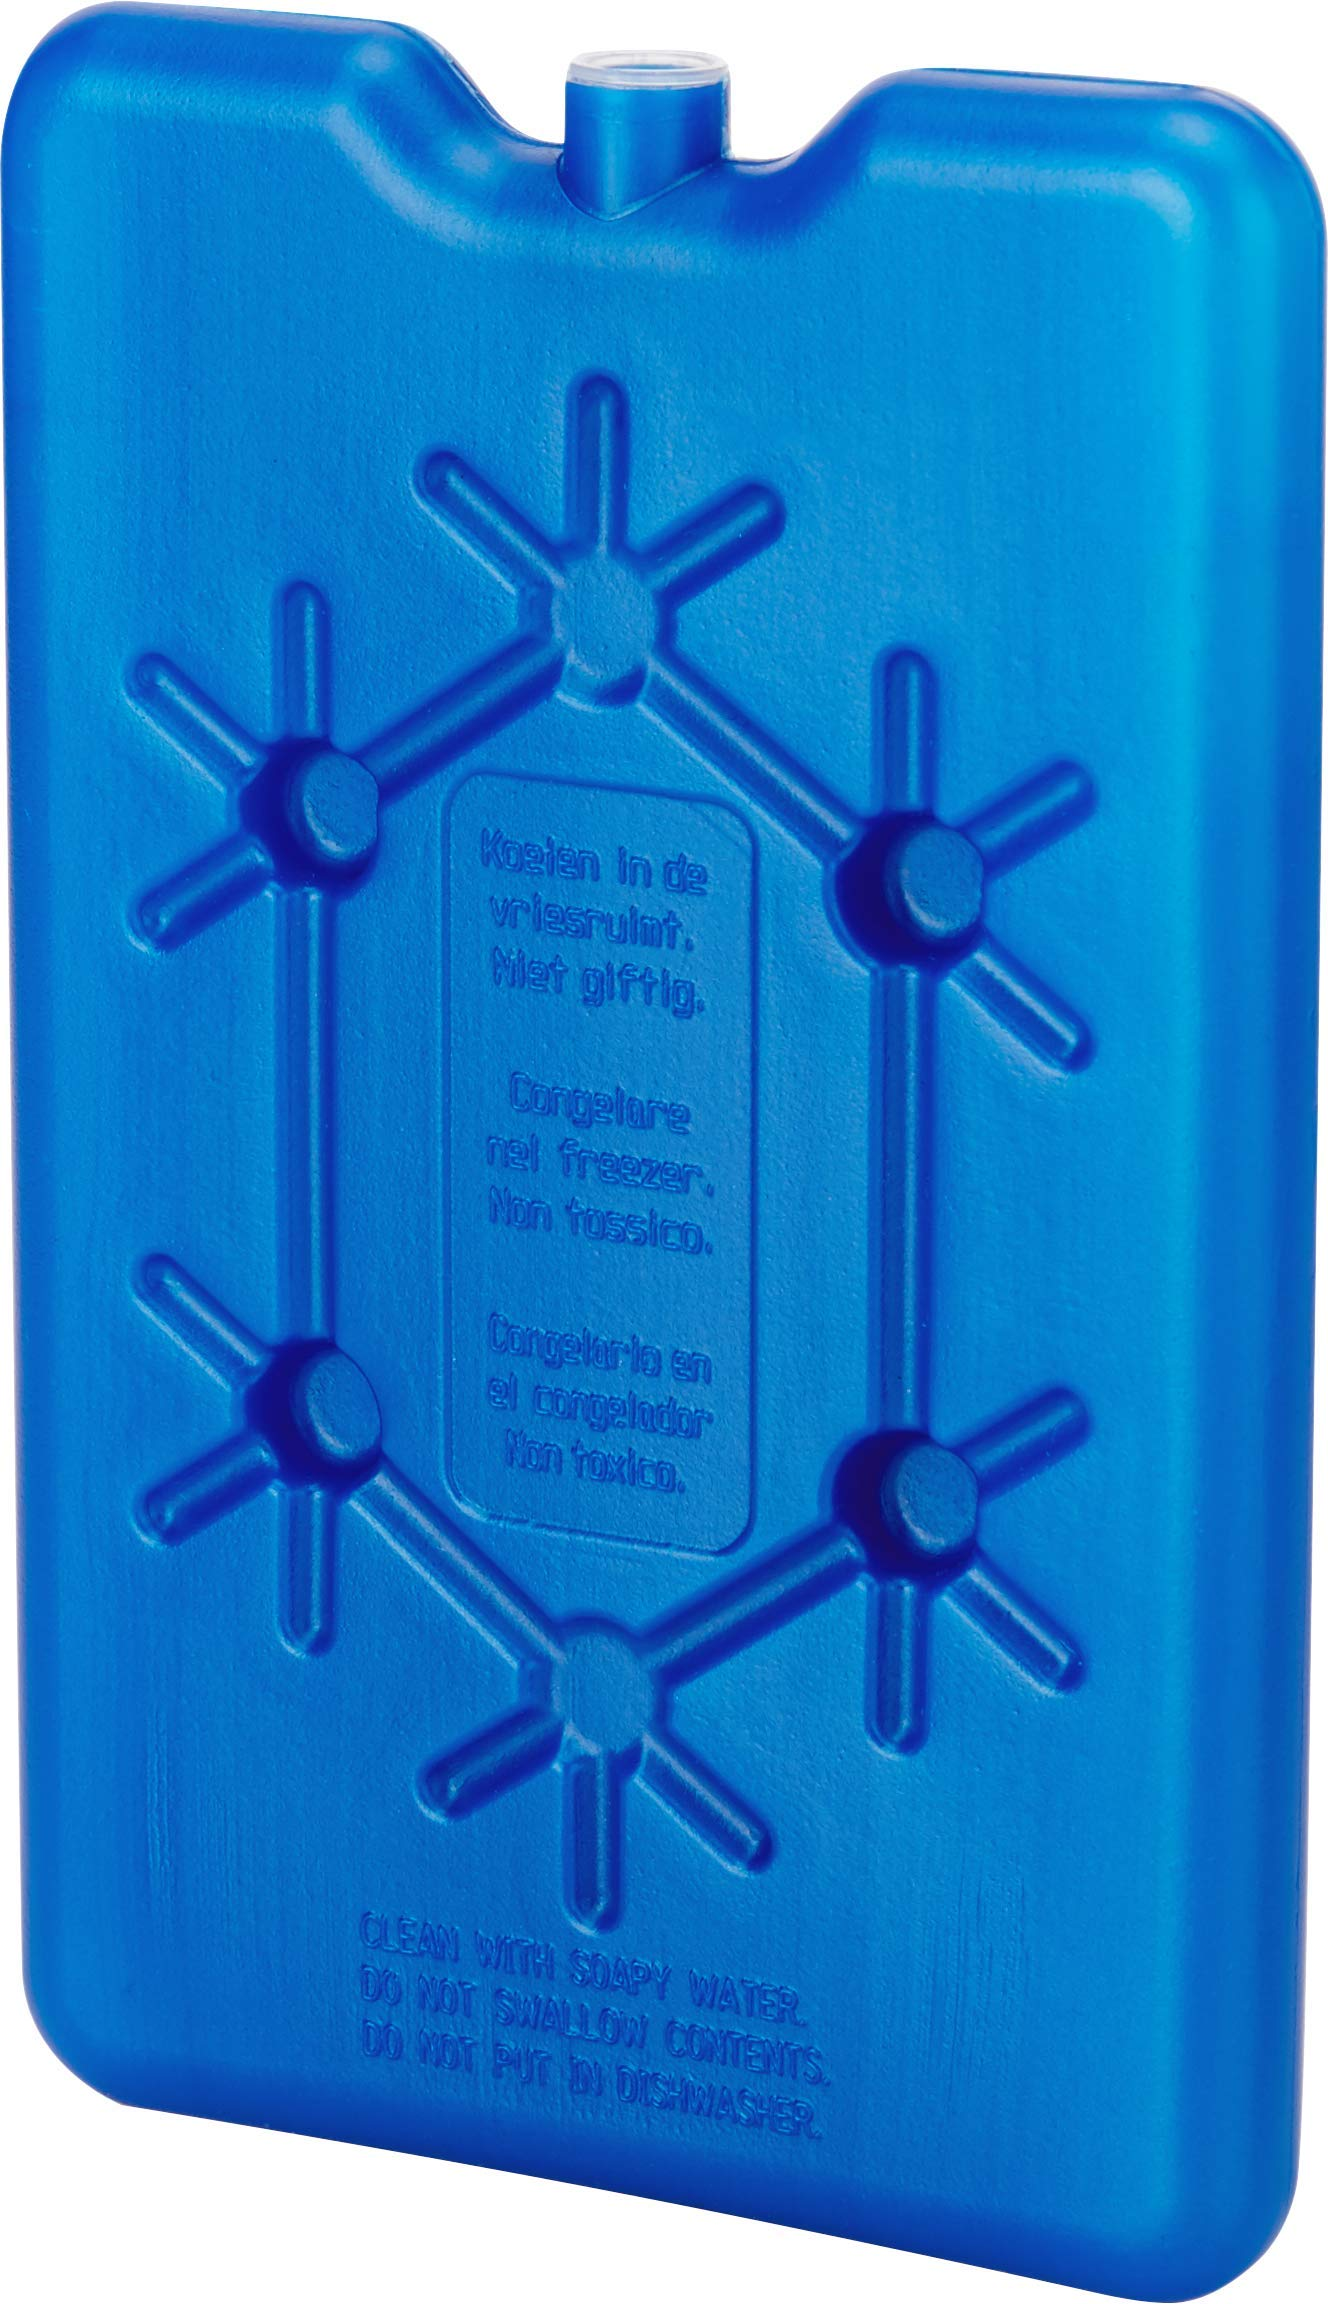 Thermos Freeze Boards, 1 x 800 g/2 x 400 g, Pack of 3 5